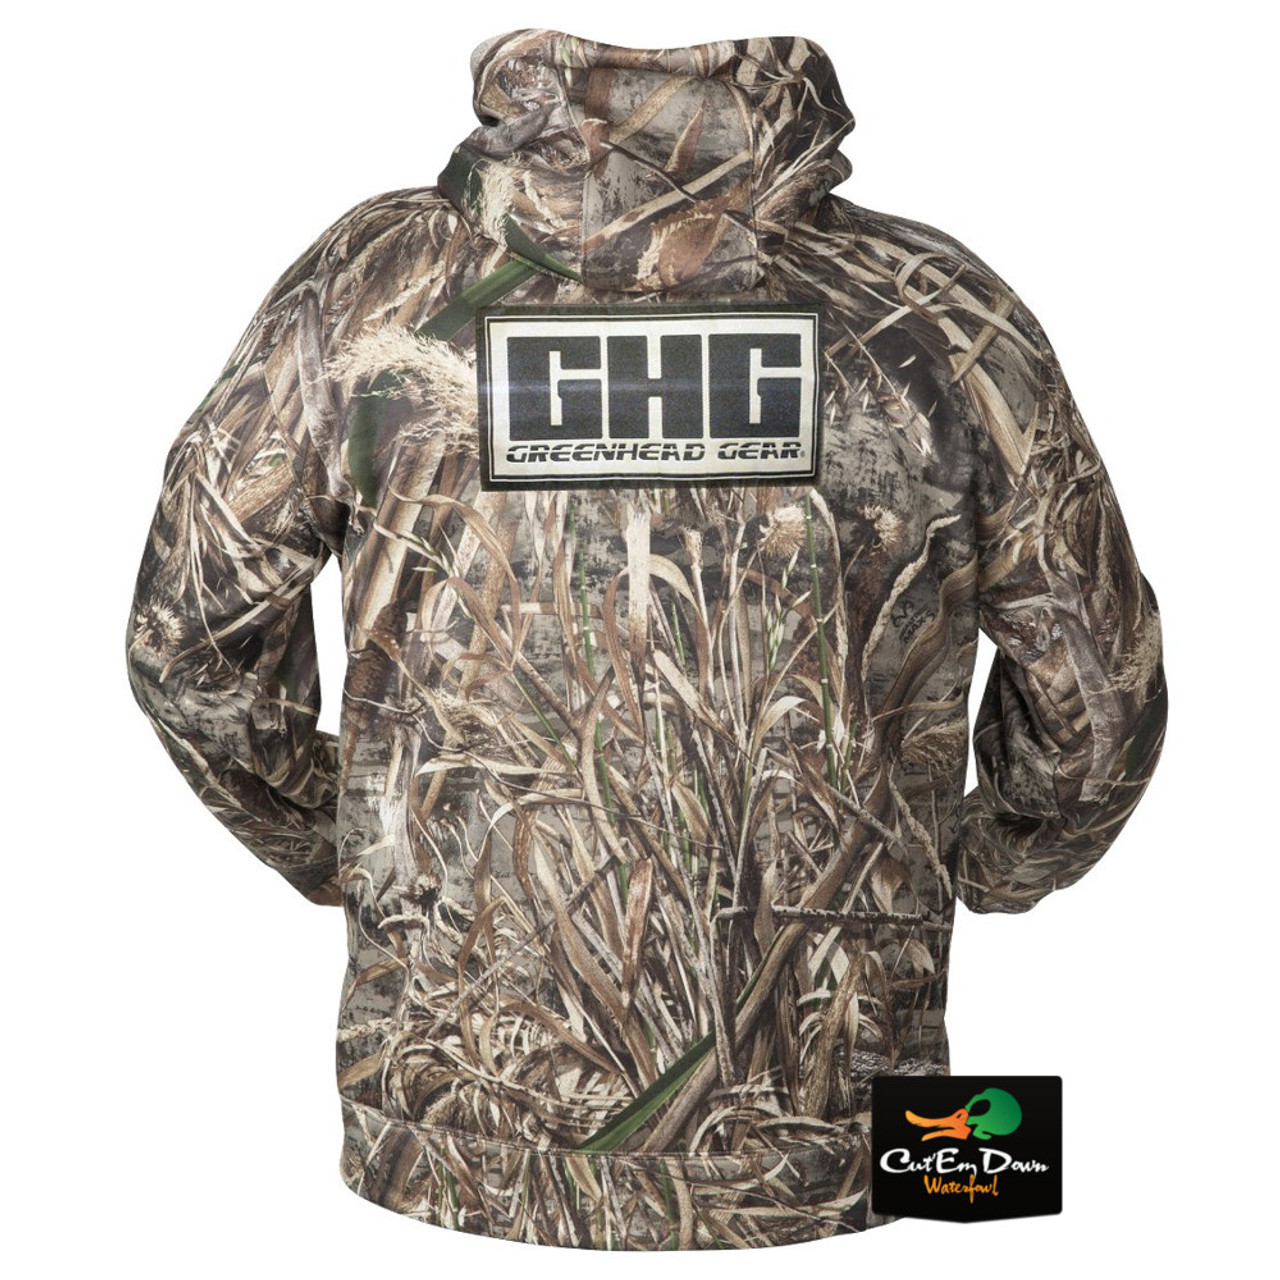 Avery Outdoors Hooded Sweatshirt - GHG Logo d55c070fe